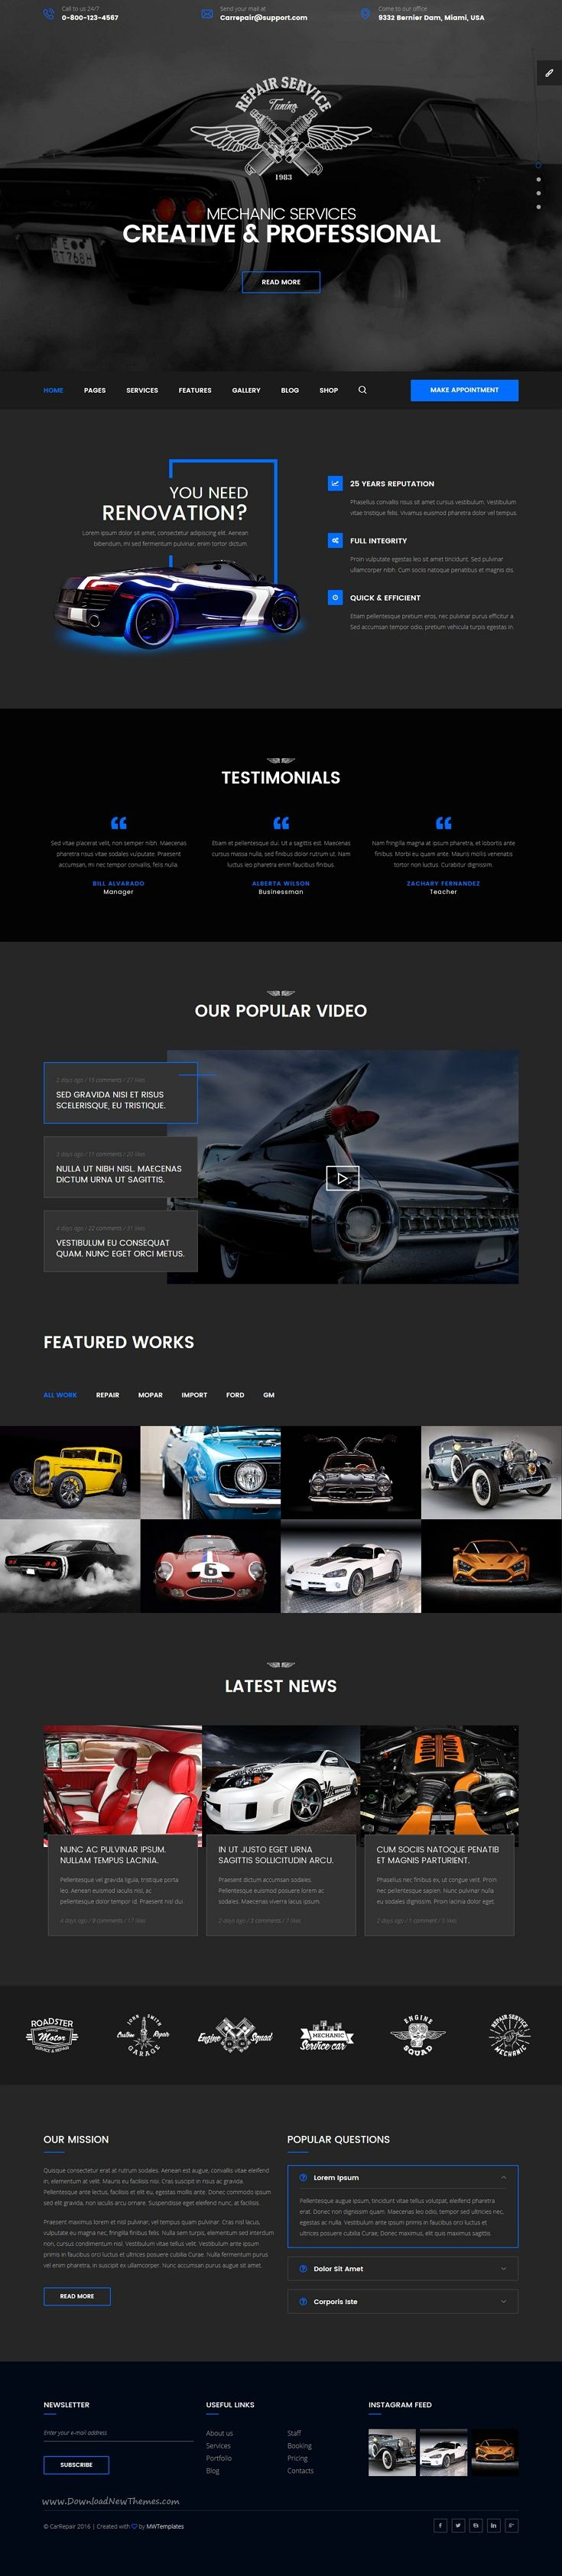 Mechanic is a new, clean and professional #HTML Template for #auto #car services, #workshops or auto parts shop website download now➩ https://themeforest.net/item/mechanic-car-repair-tuning-routine-maintenance-html-template-with-visual-builder/18948149?ref=Datasata